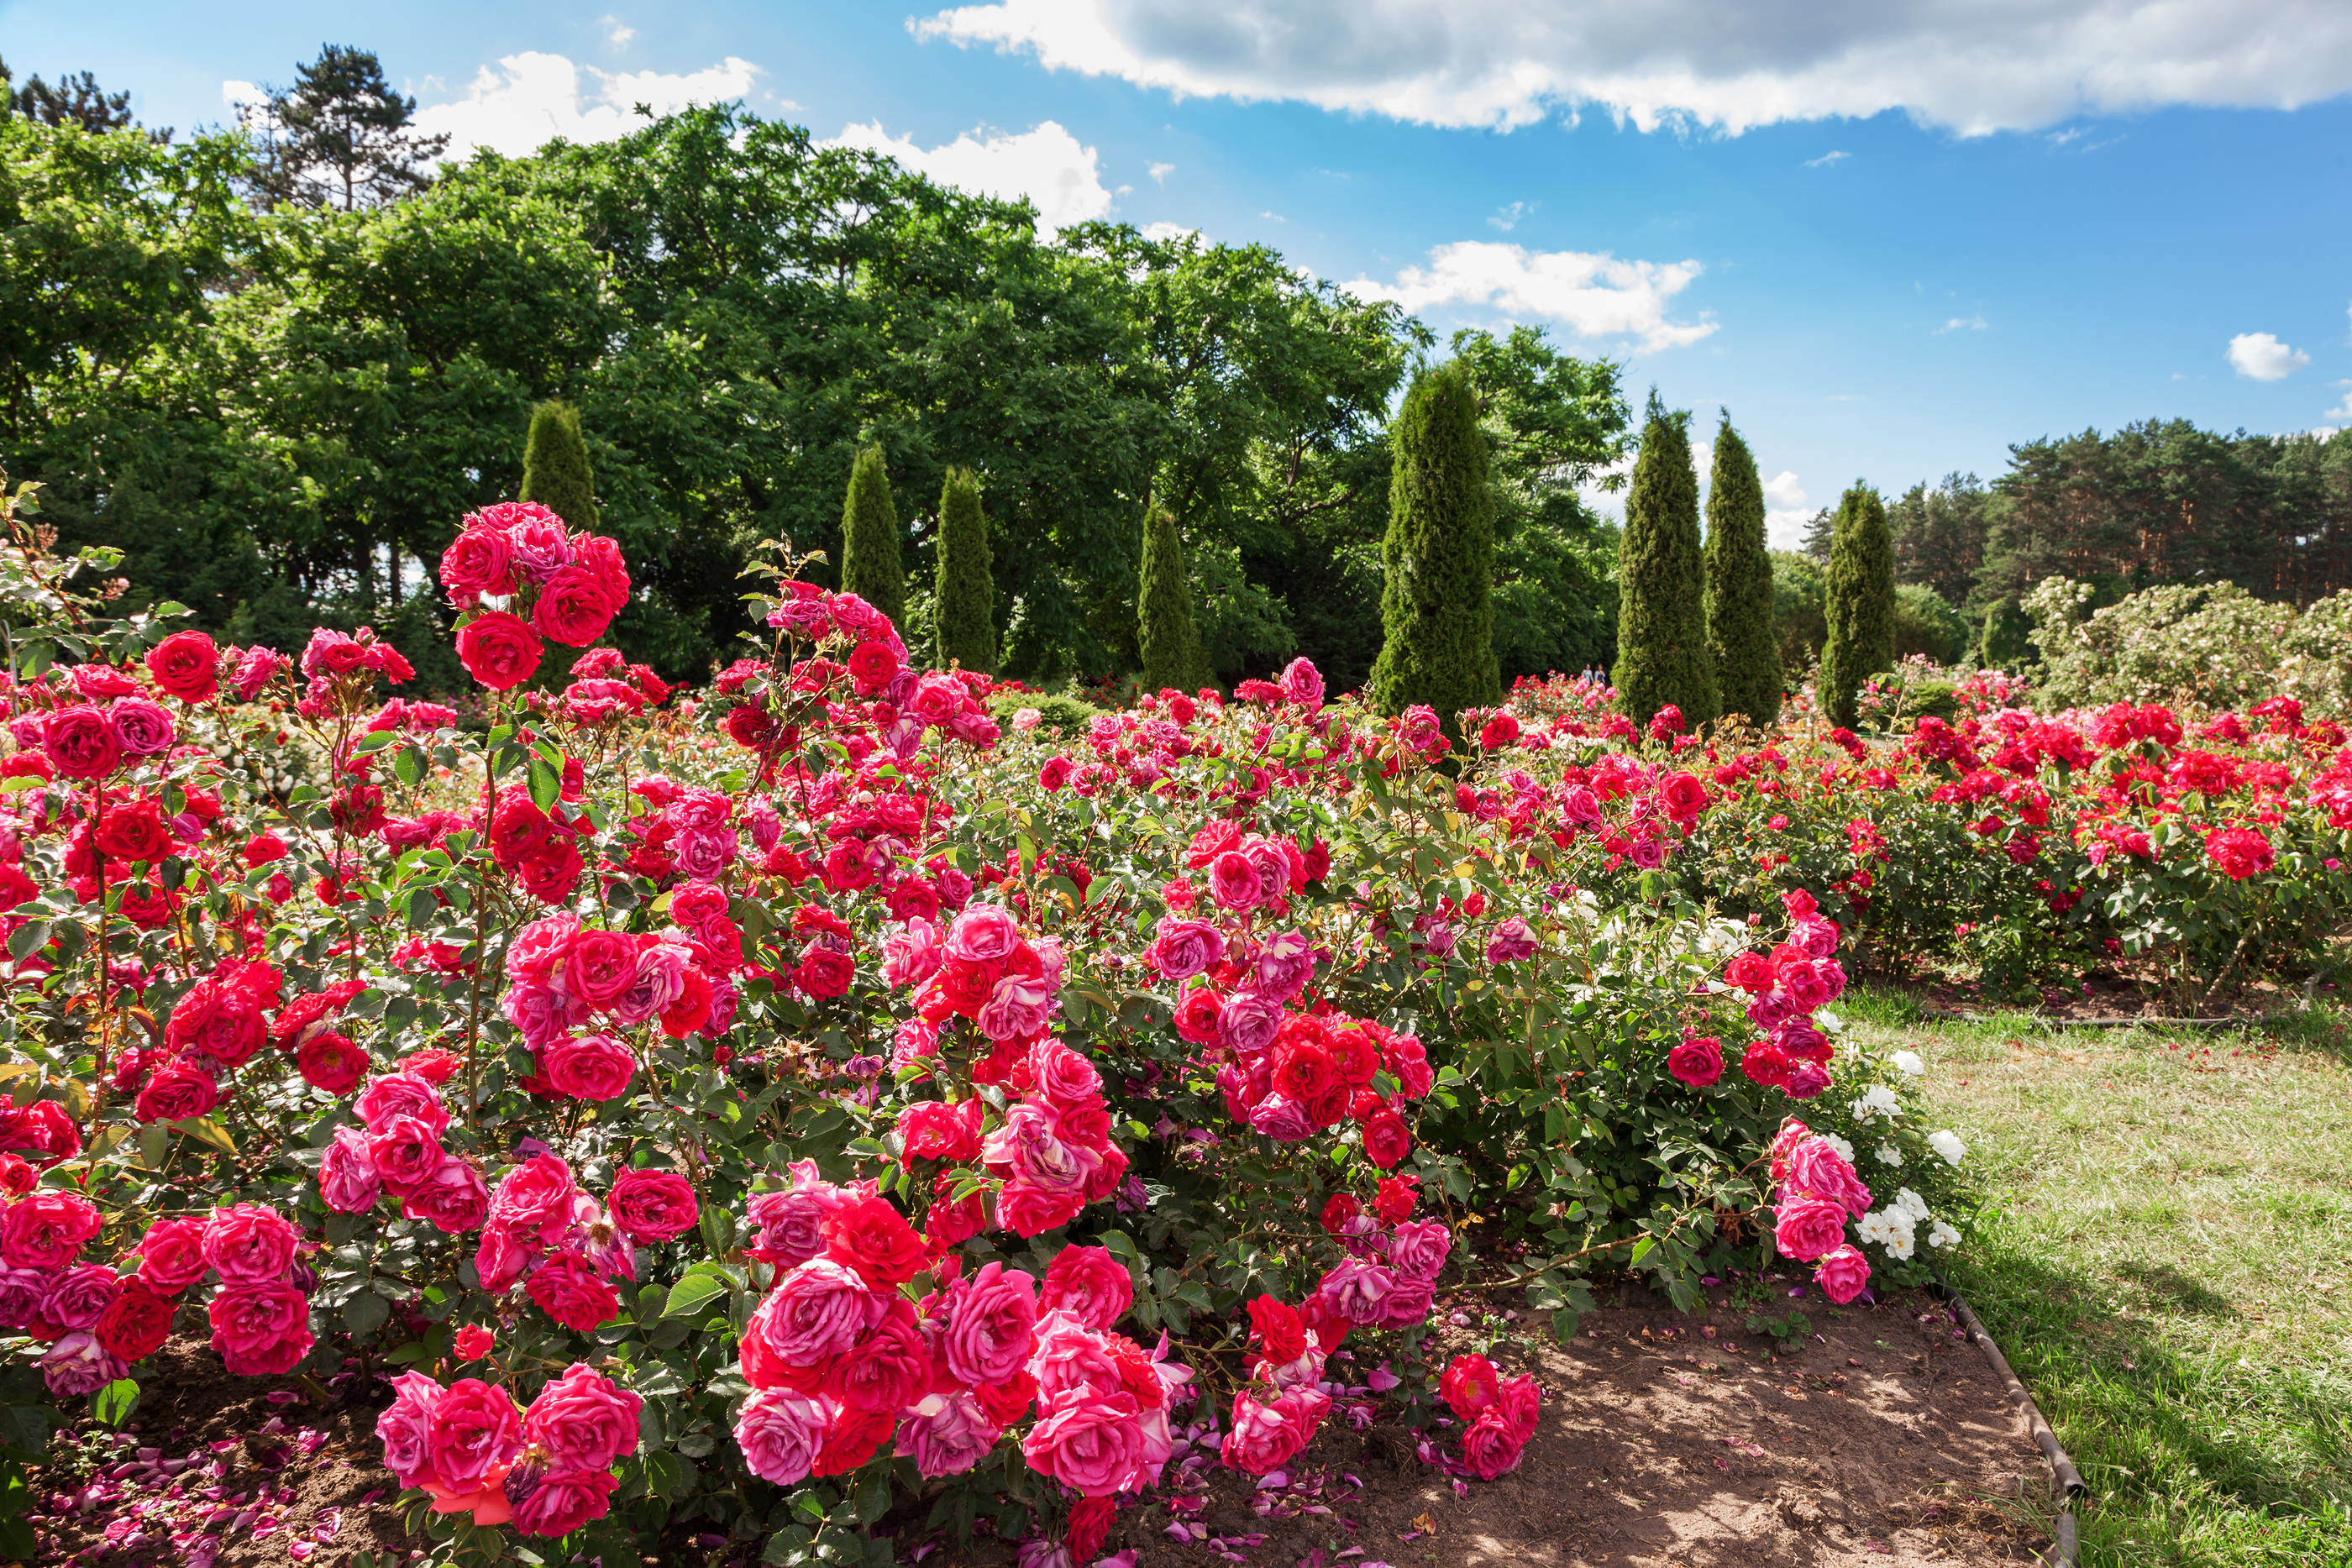 Rose Care: Different Types of Roses You can choose for Your Garden